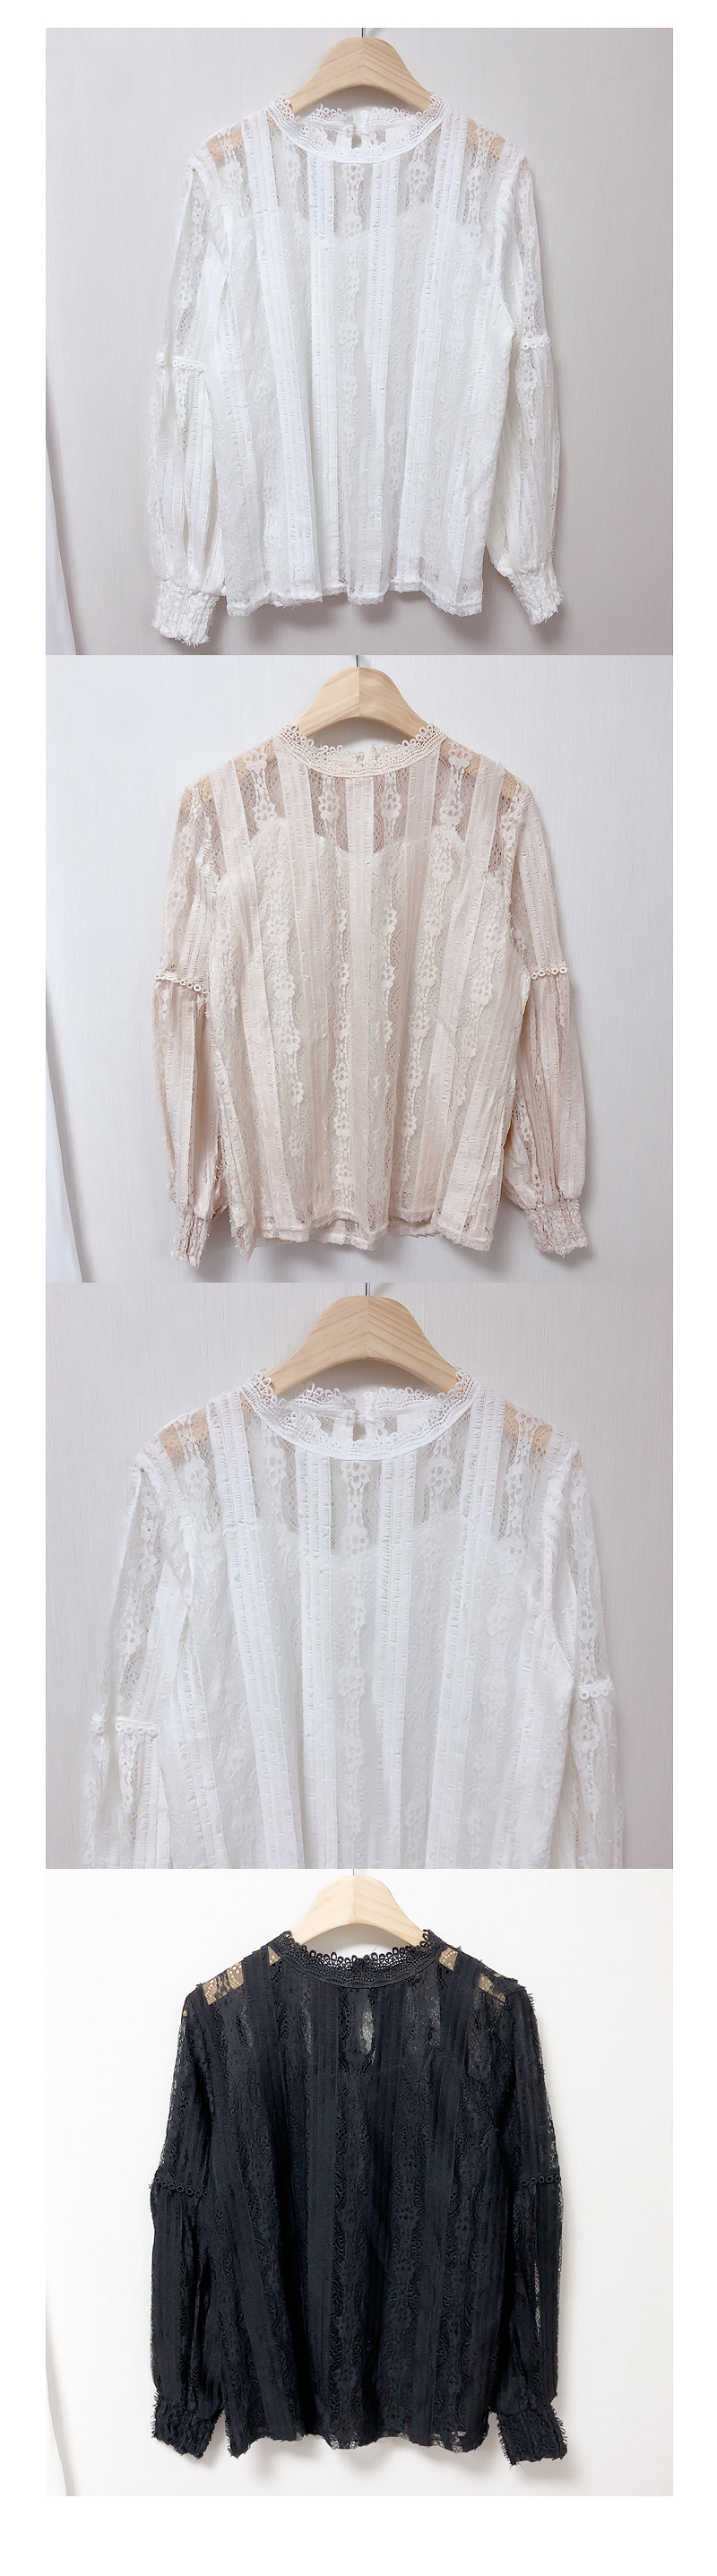 ♥ Embroidery lace blouse